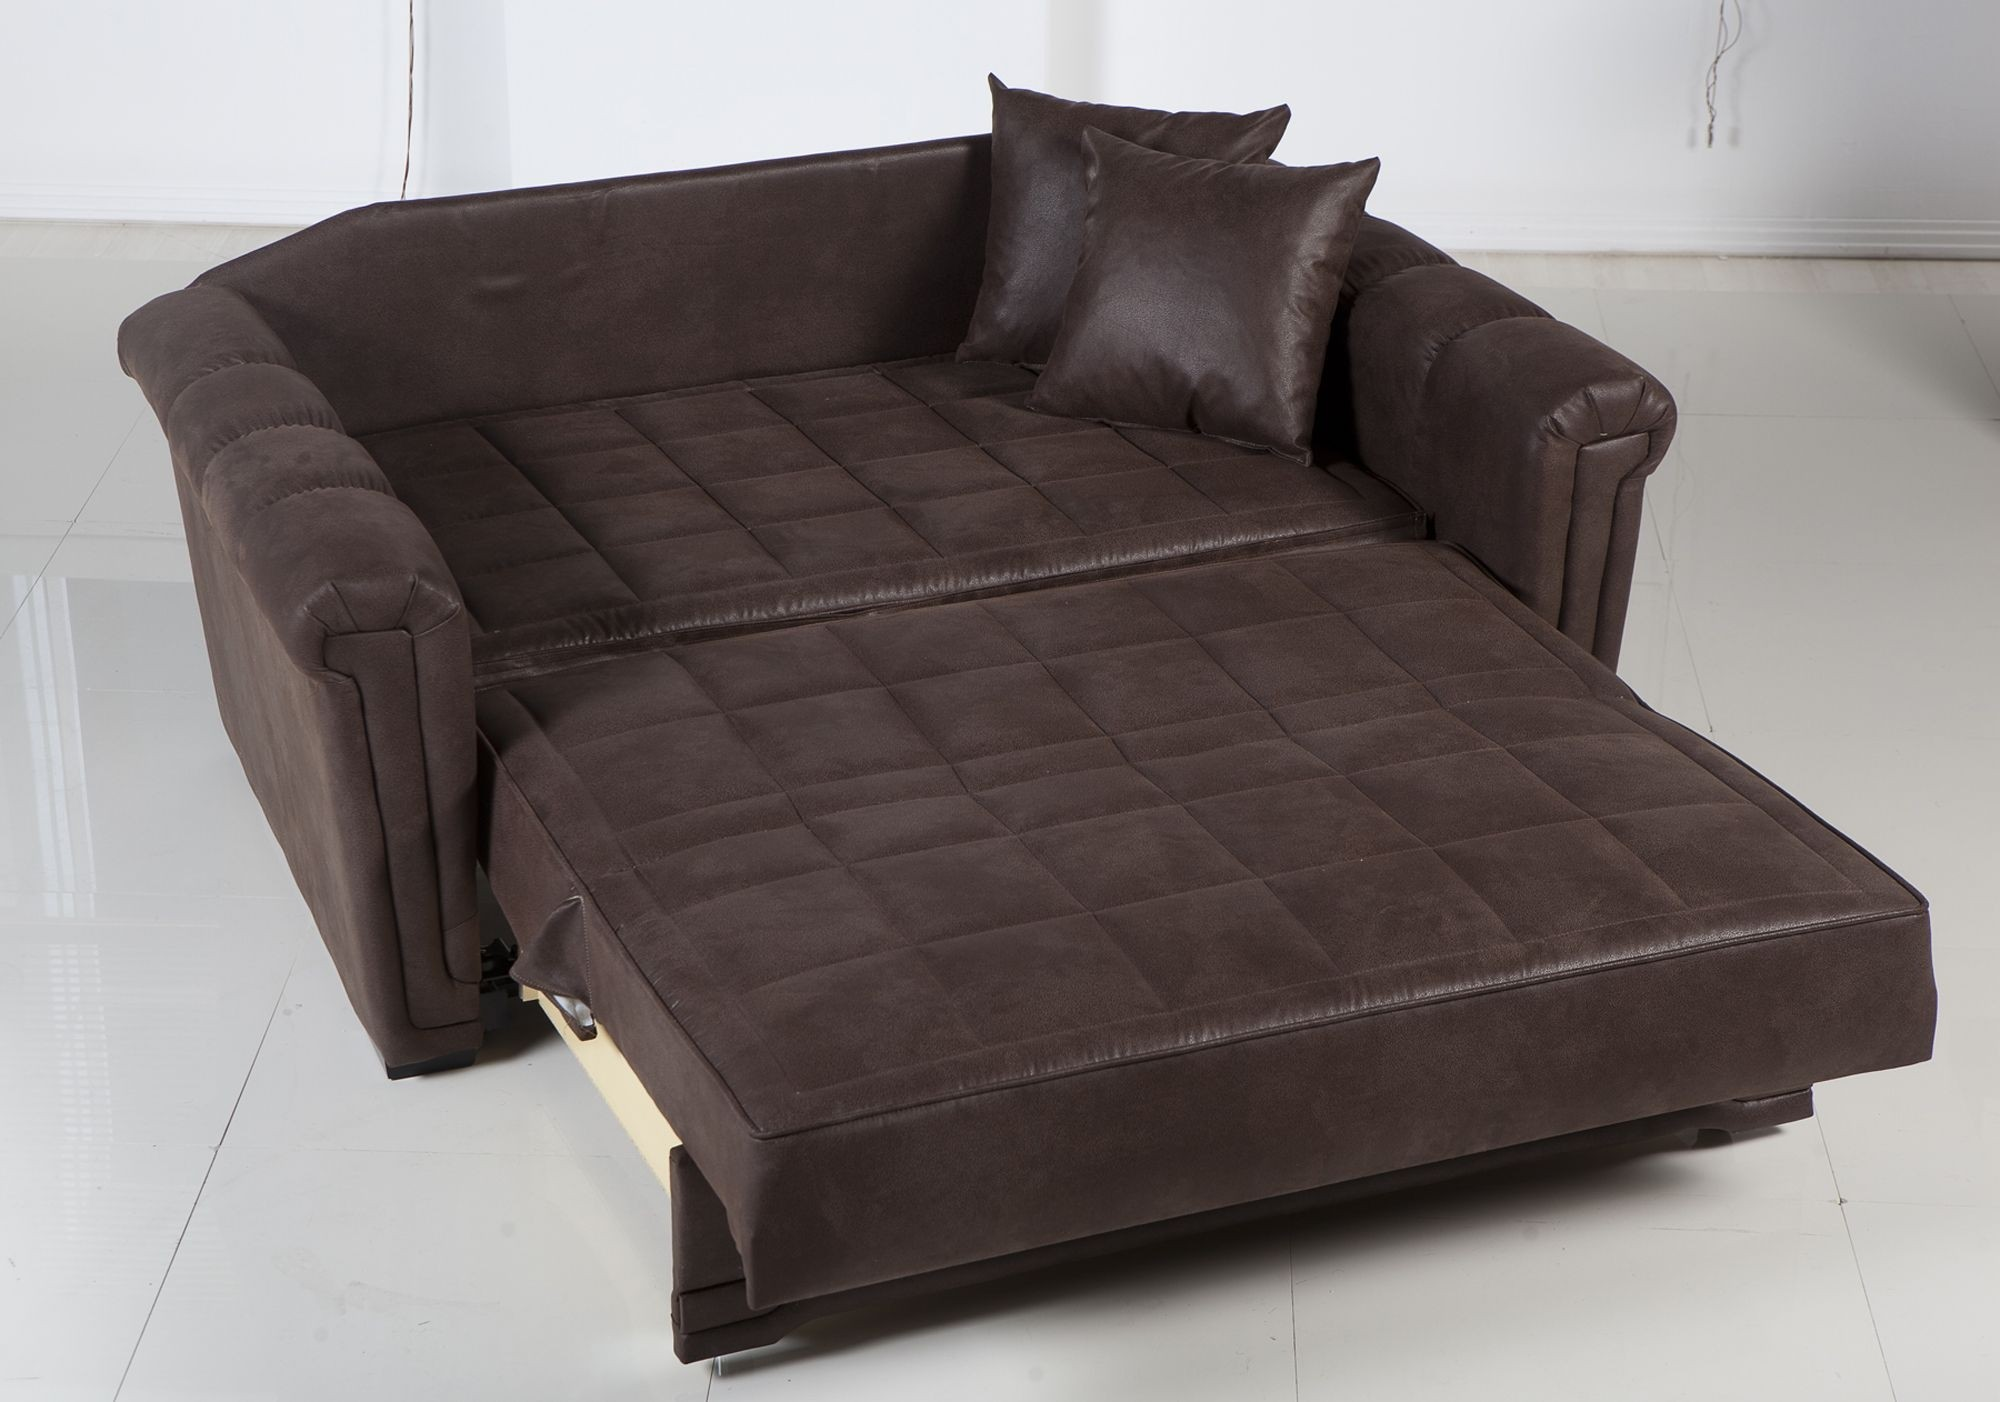 pull out loveseat sofa bed ideas on foter rh foter com sofa bed loveseat ikea sofa sleeper loveseat